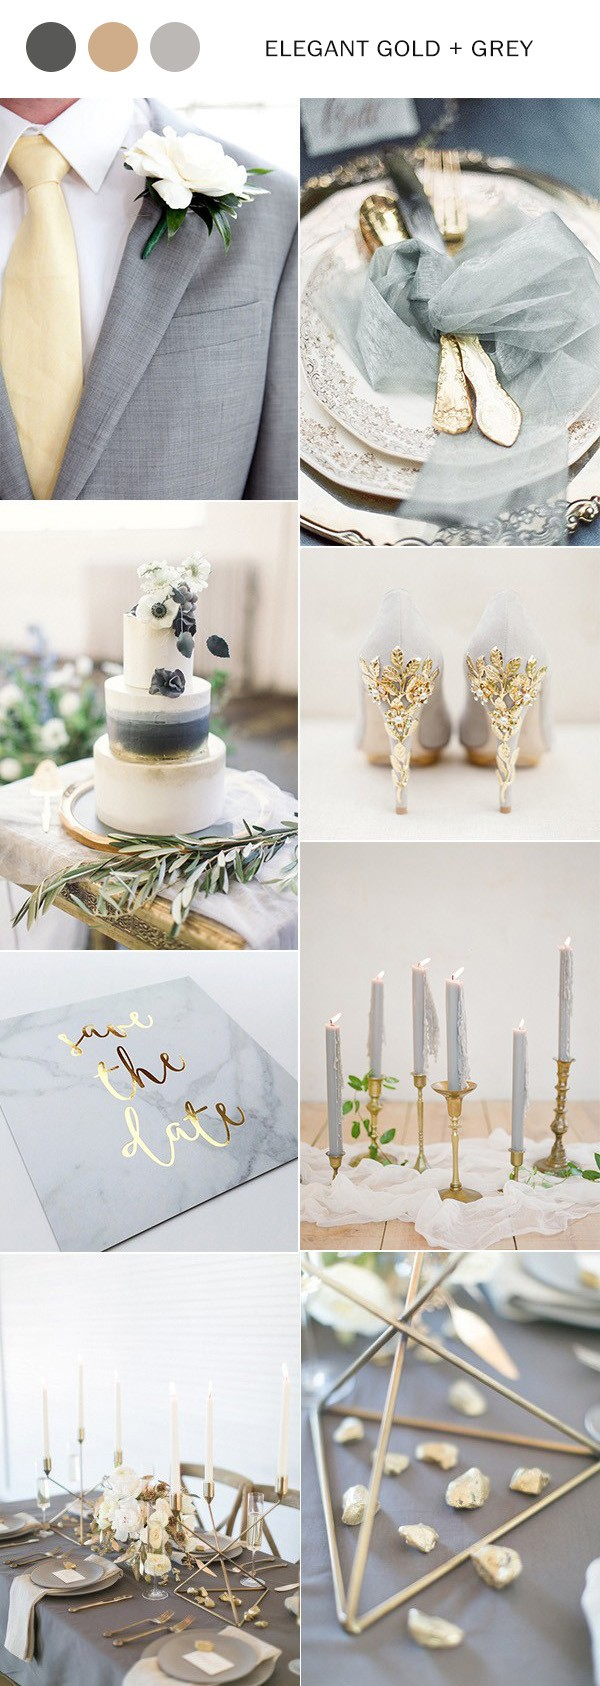 Elegant Gold and Grey Wedding Color Inspiration - EmmaLovesWeddings